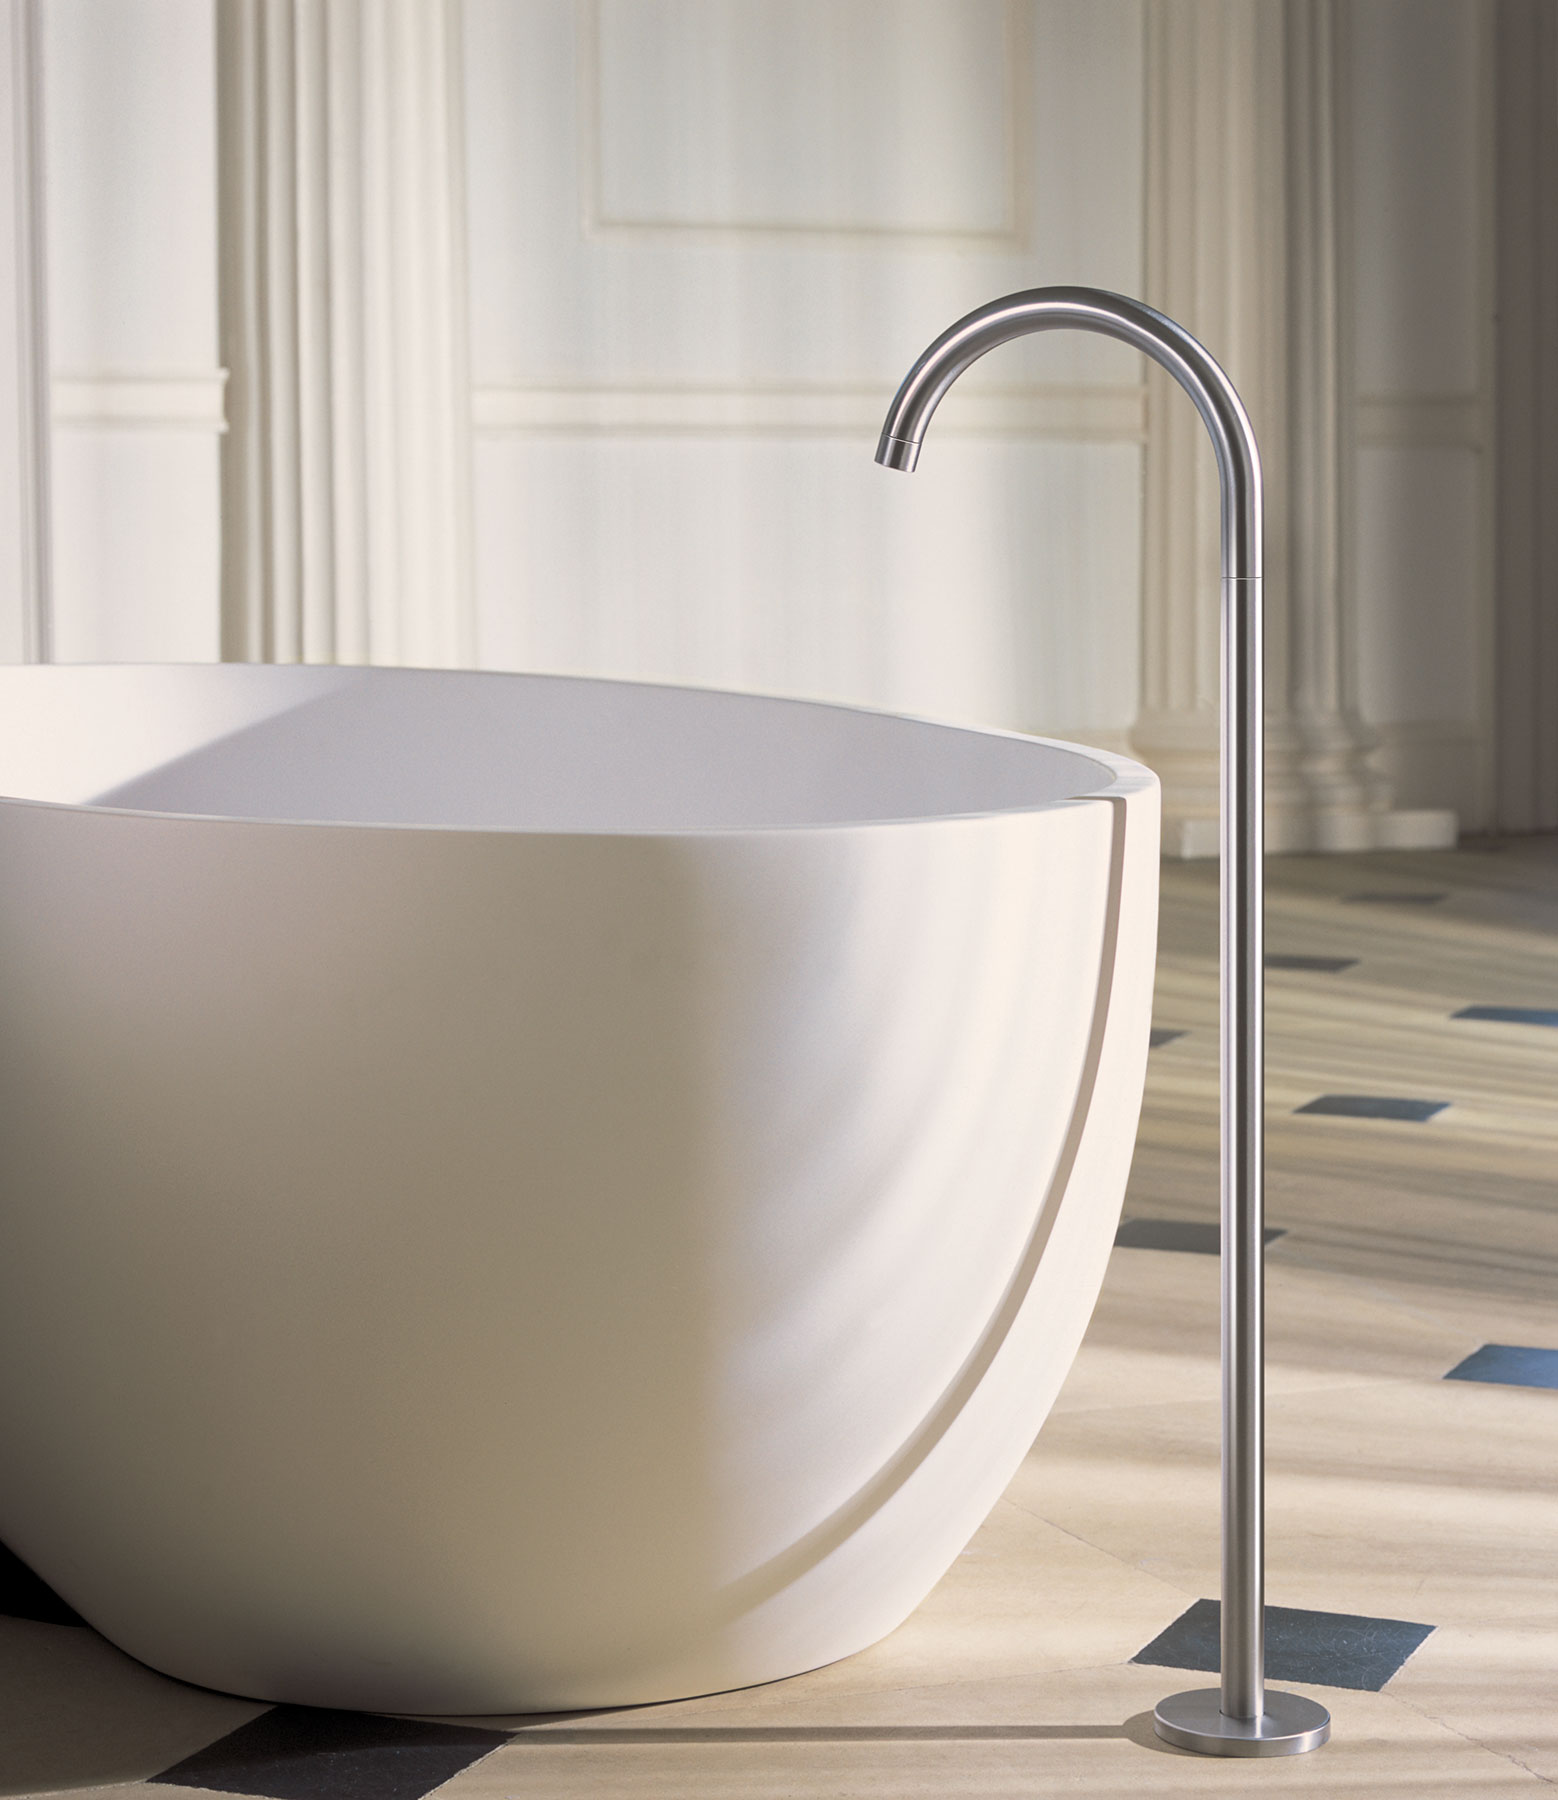 Transitional Vola Floor Mount Tub Spout   Hydrology